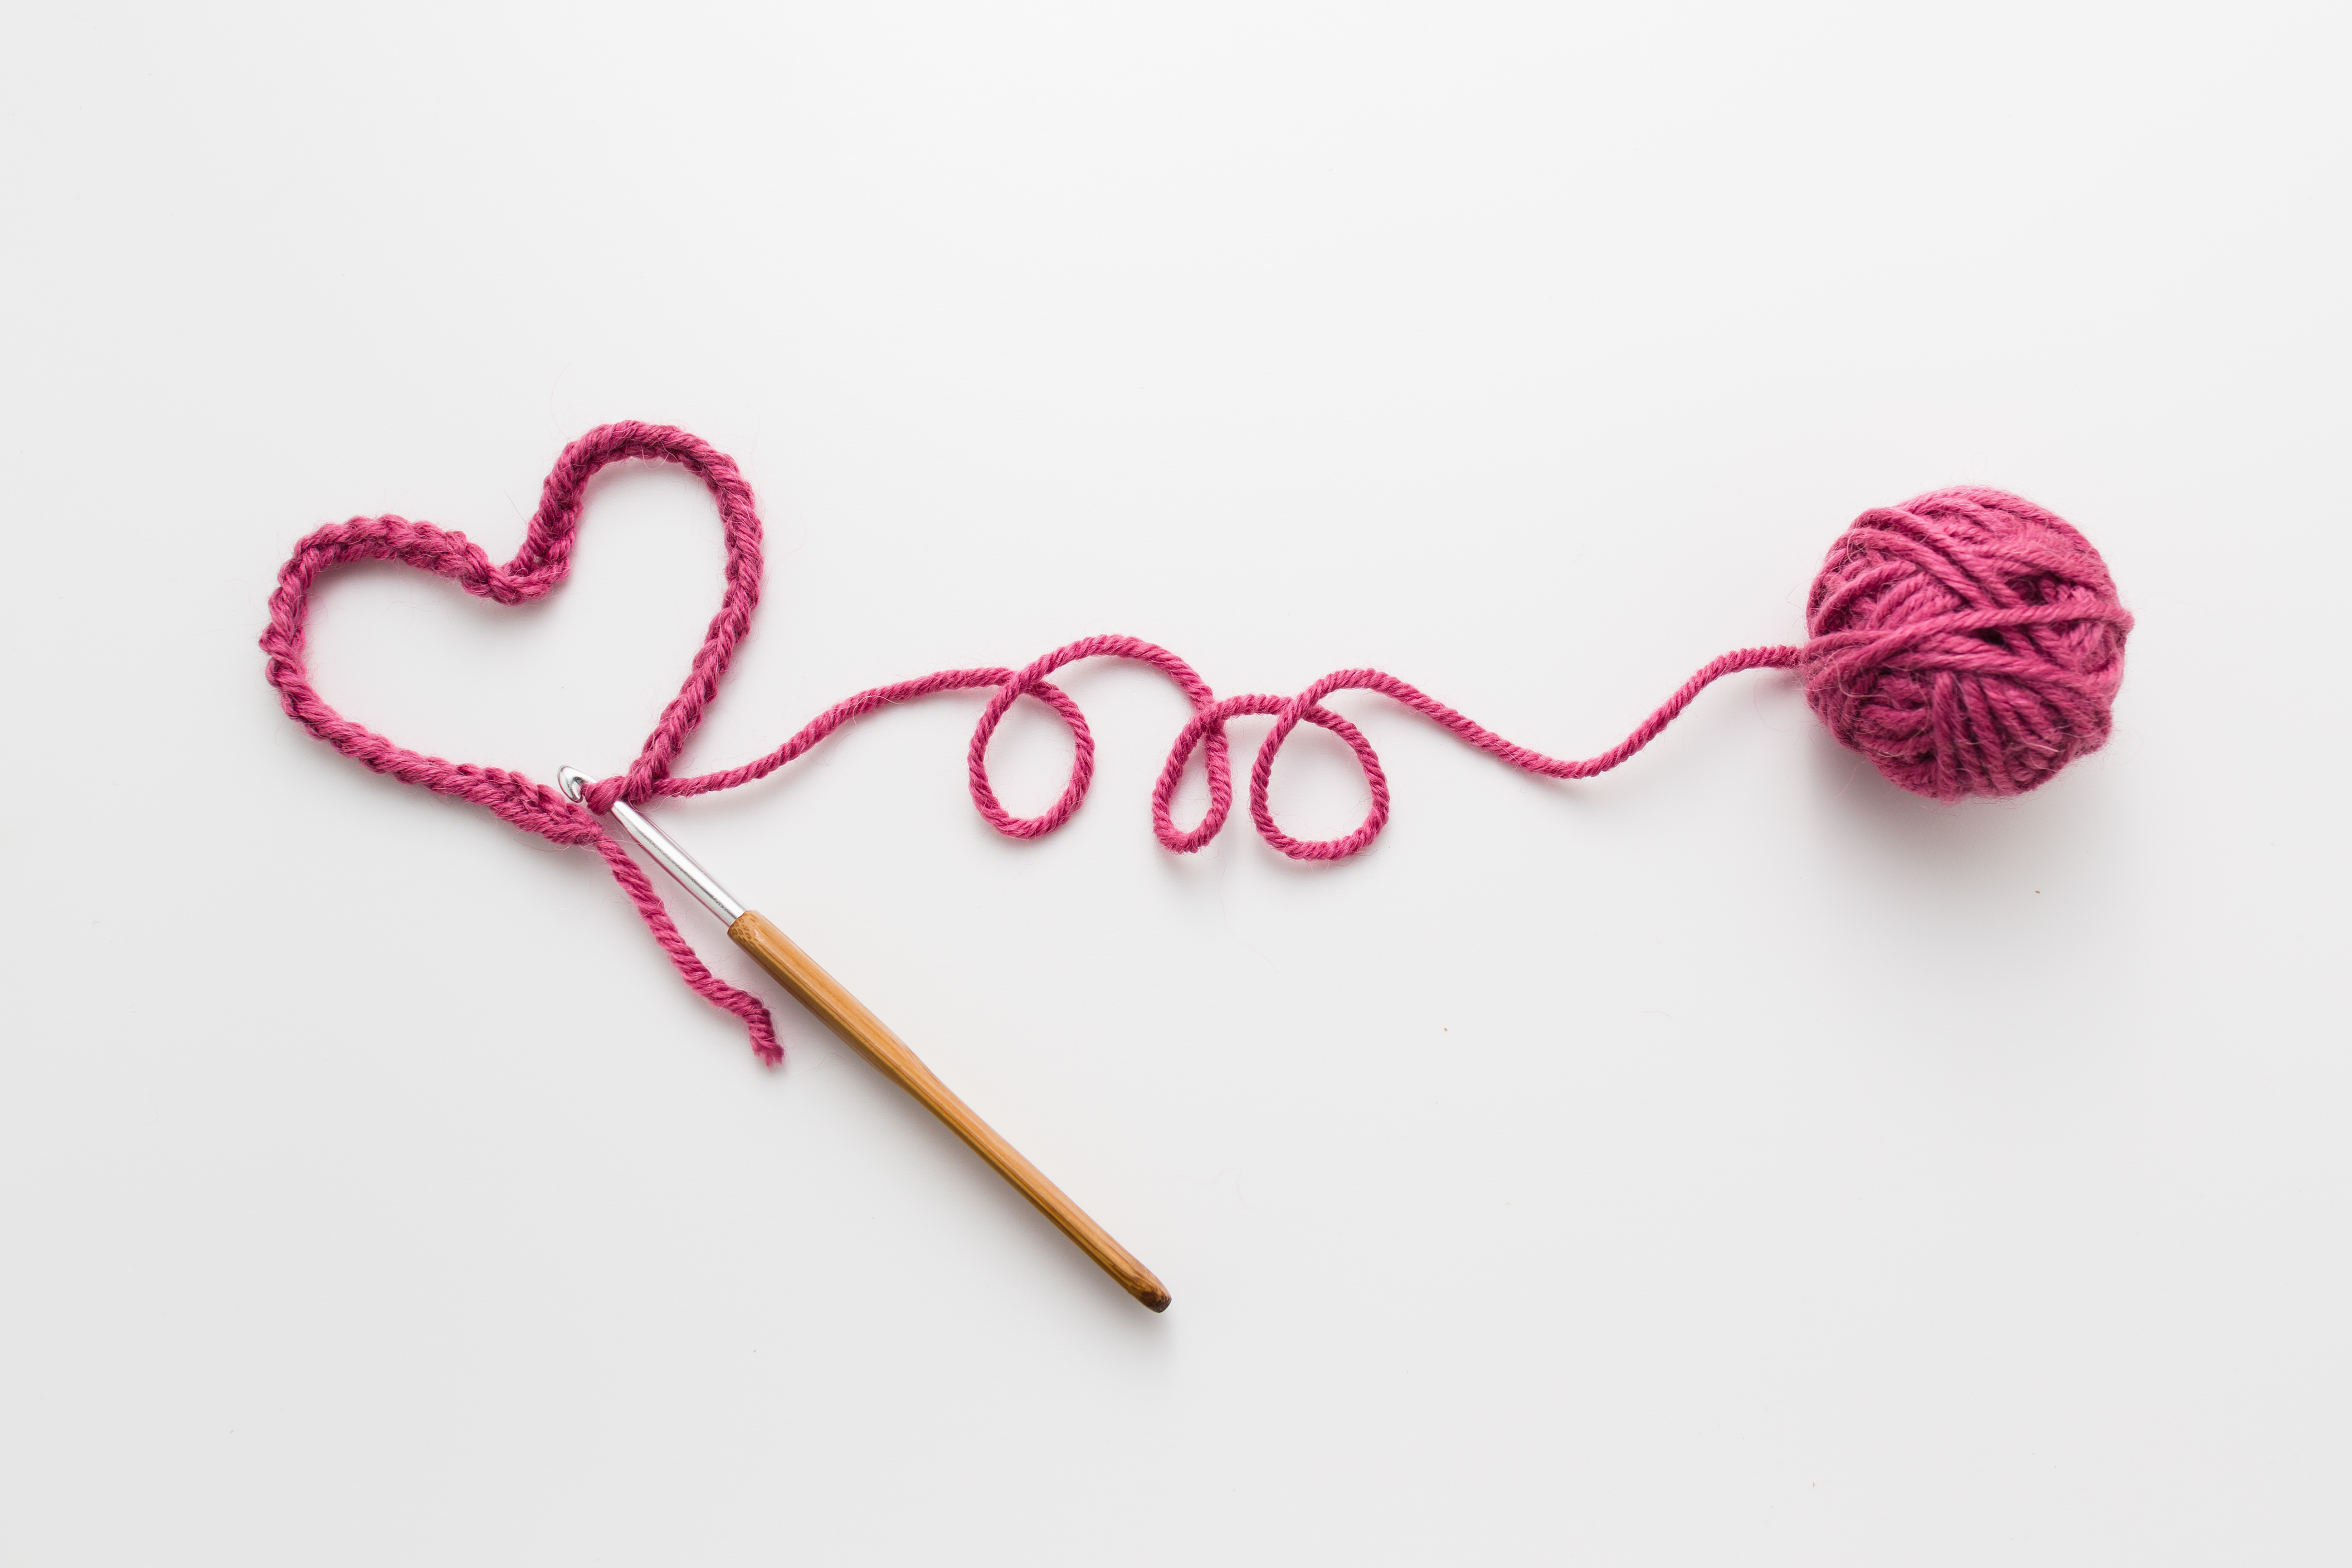 pink yarn crocheted into a heart